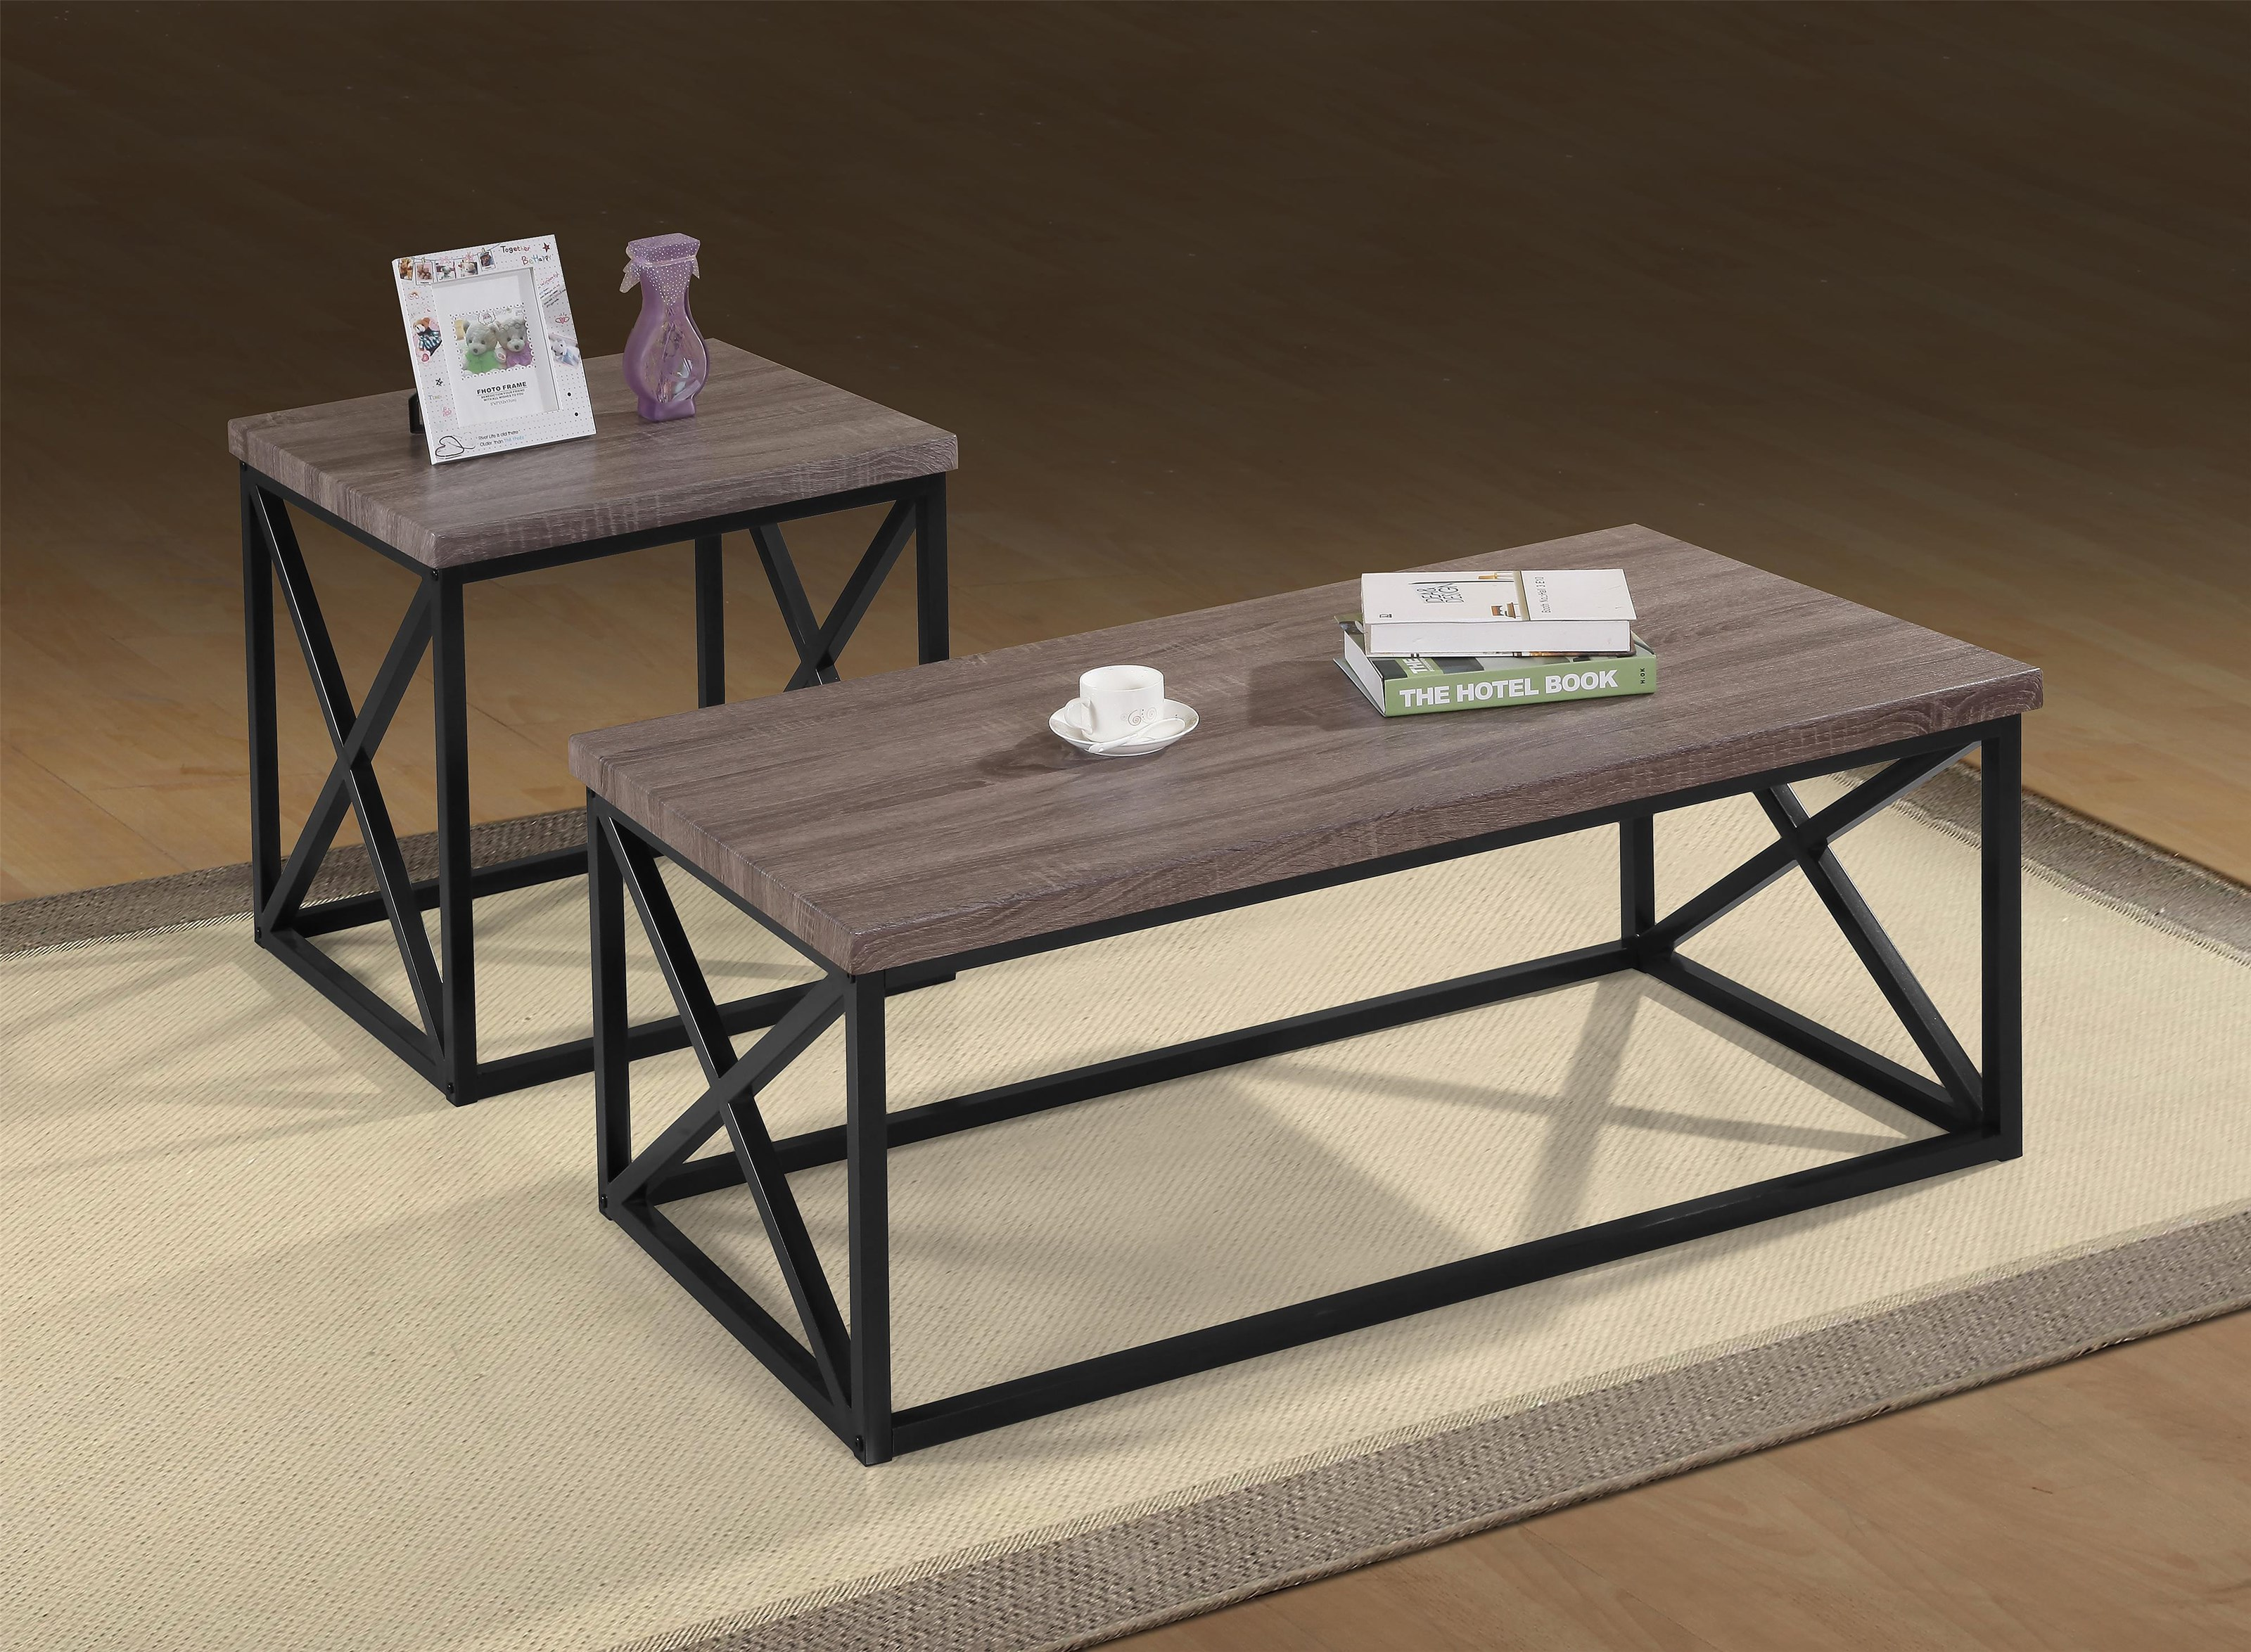 Oreon Trail Oreon Trail 3-Pack Tables by Jofran at Morris Home